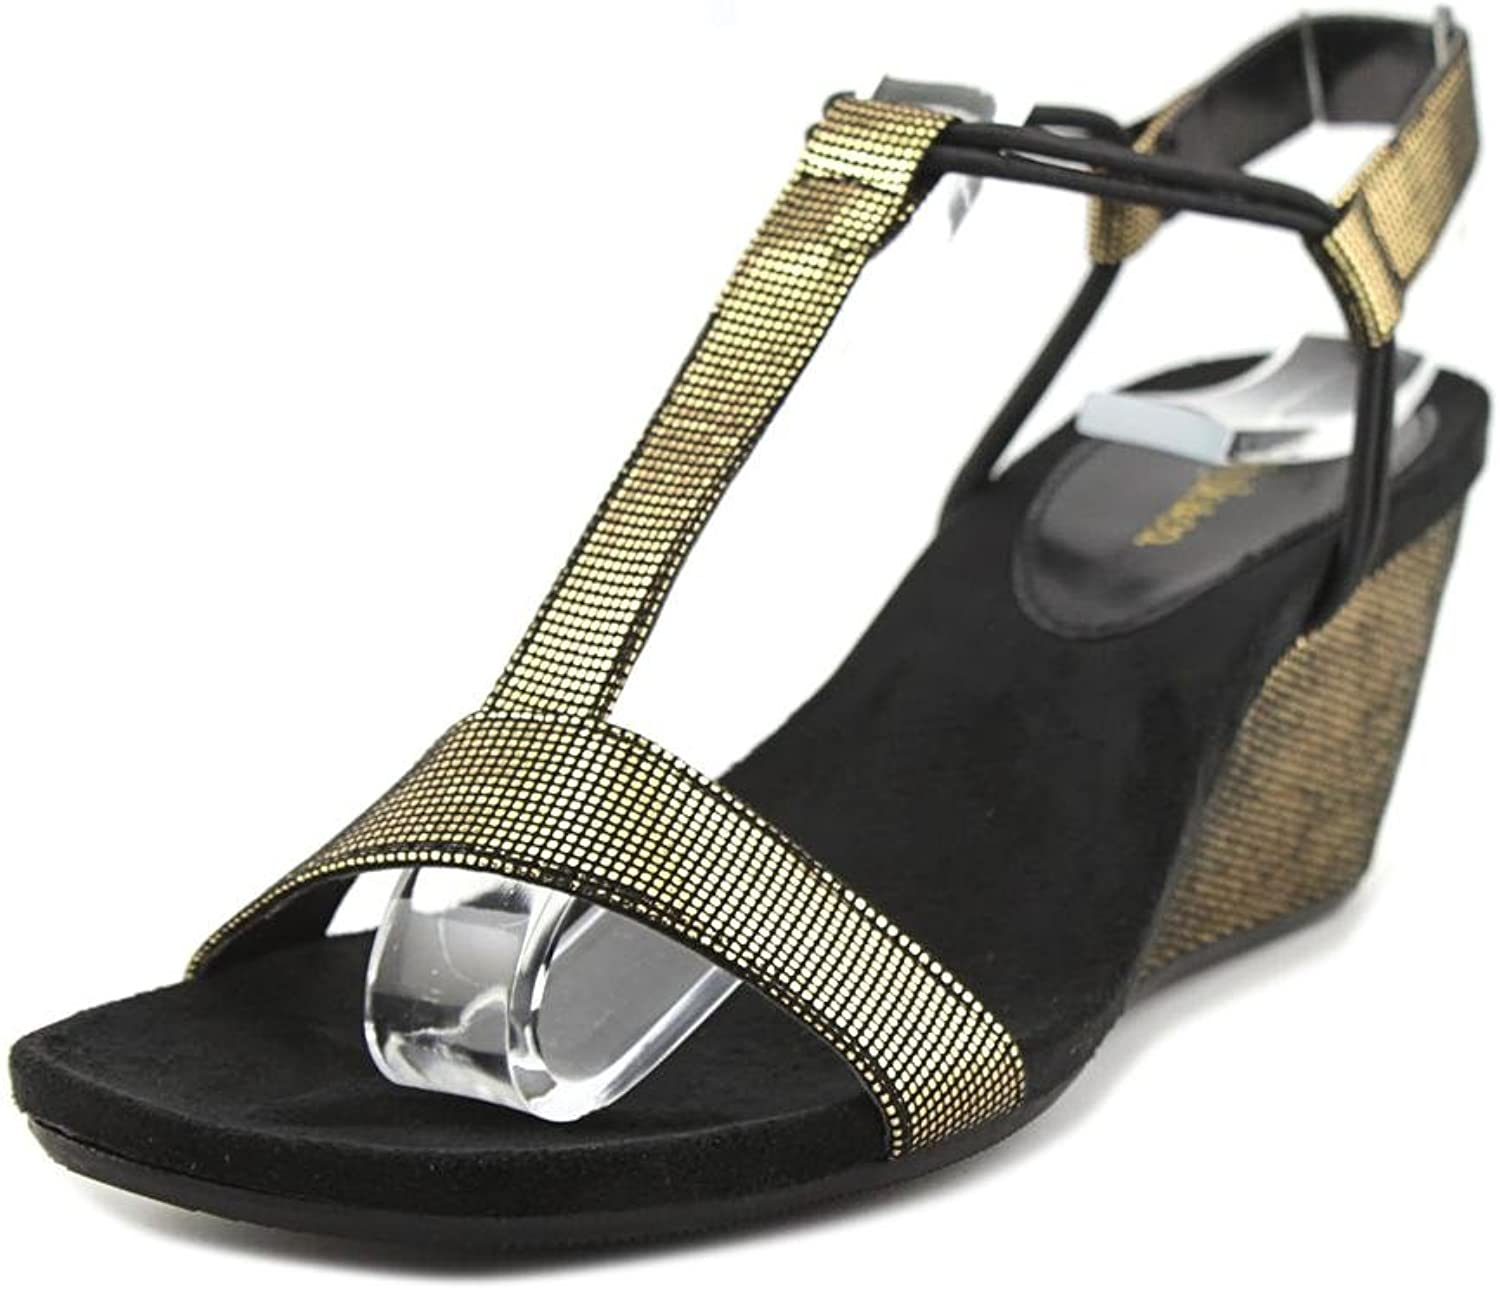 Style & Co. Womens Mulan Open Toe Casual Platform Sandals, Black, Size 10.0